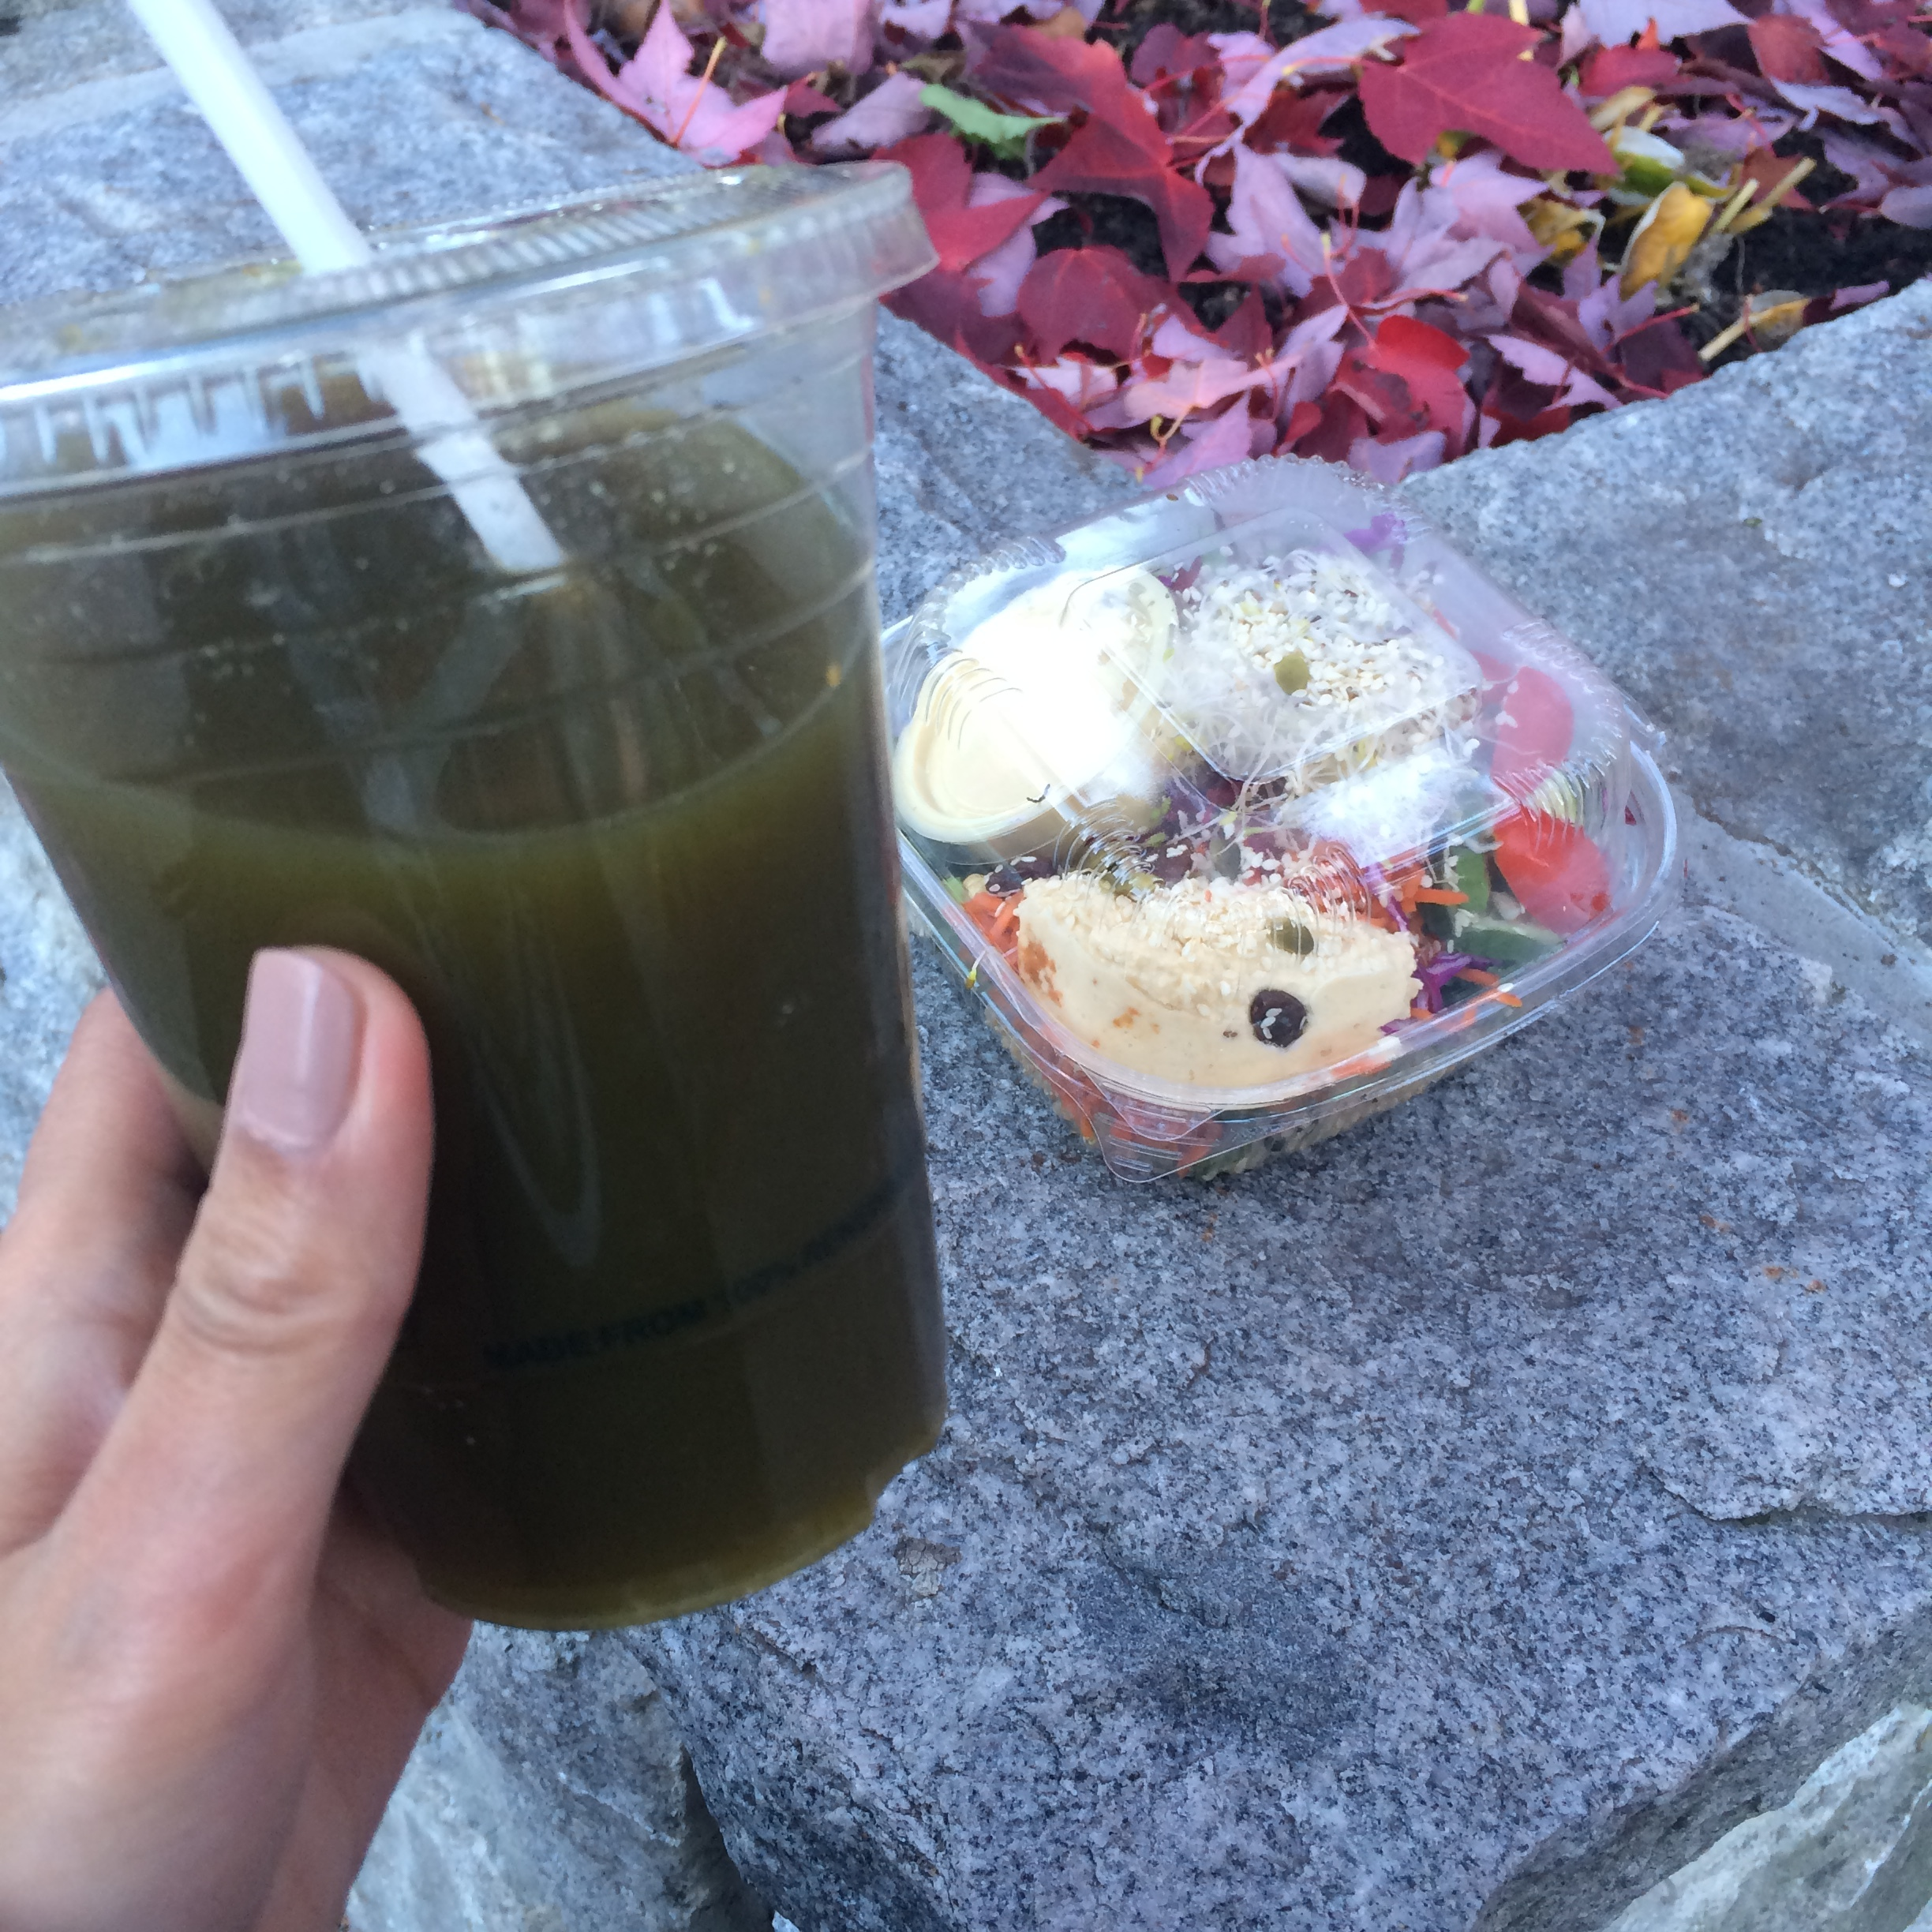 Buddha Bowl & green juice from Green Moustache for the road